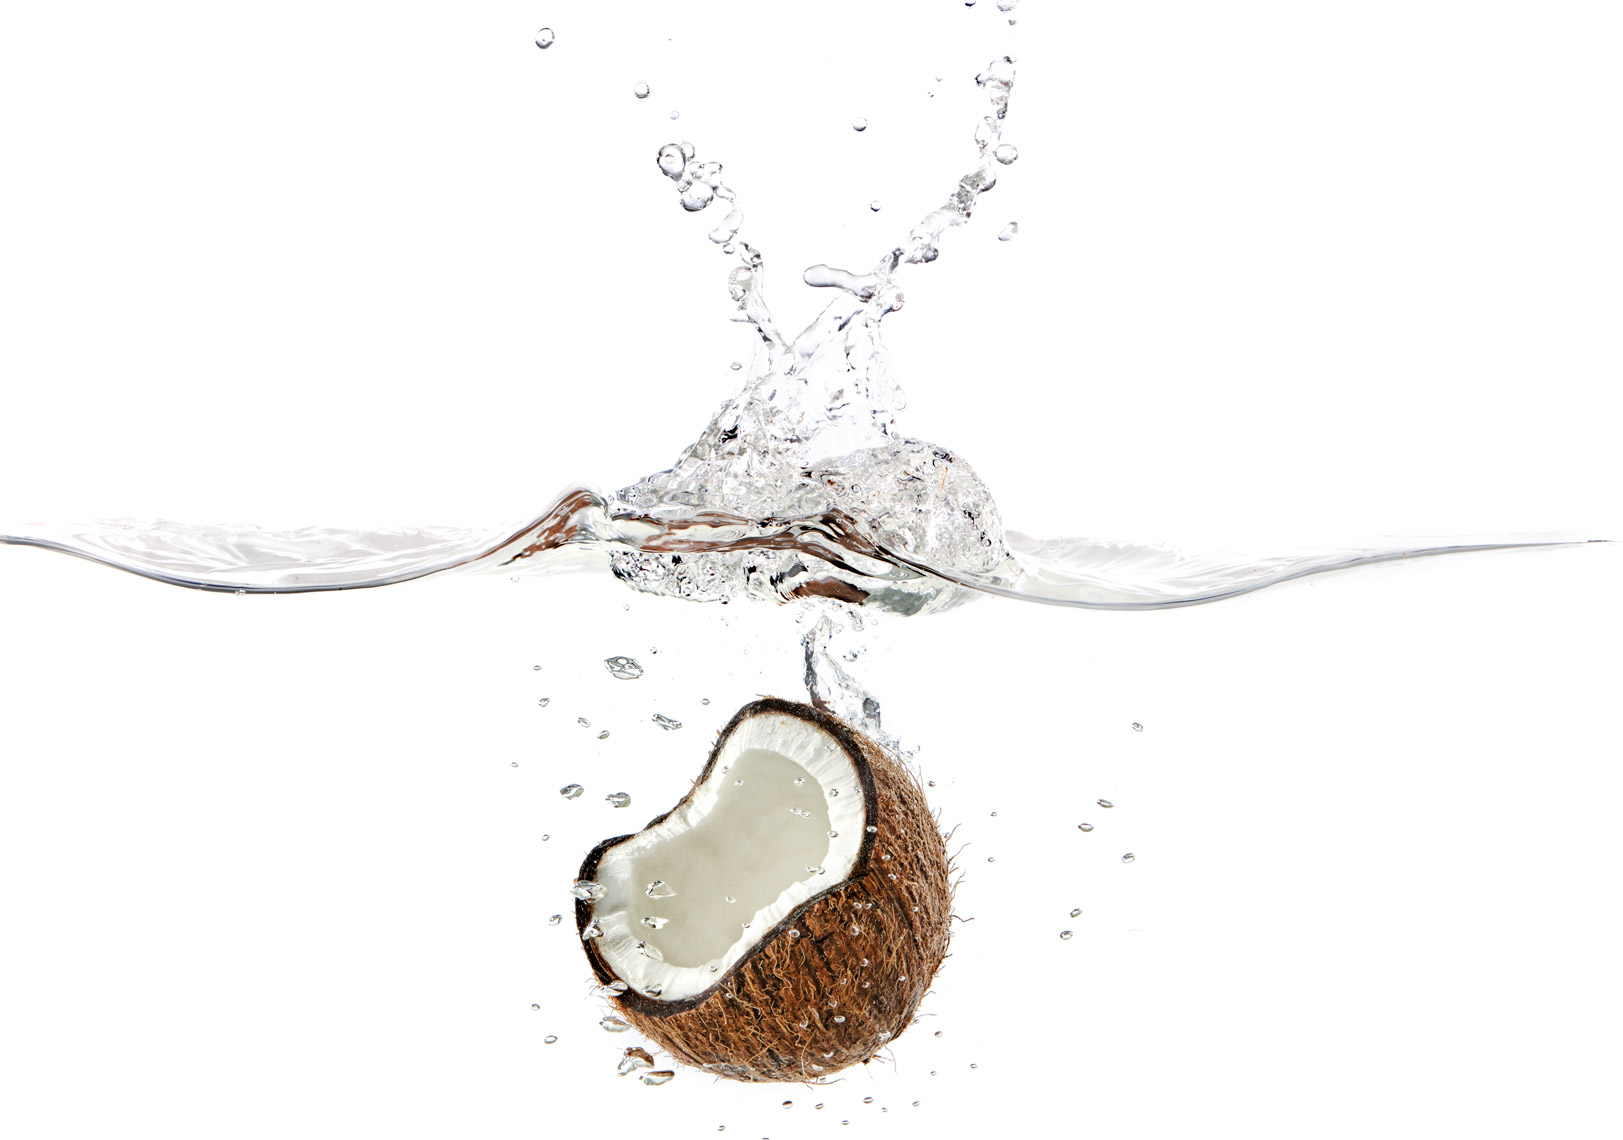 CoconutSplash